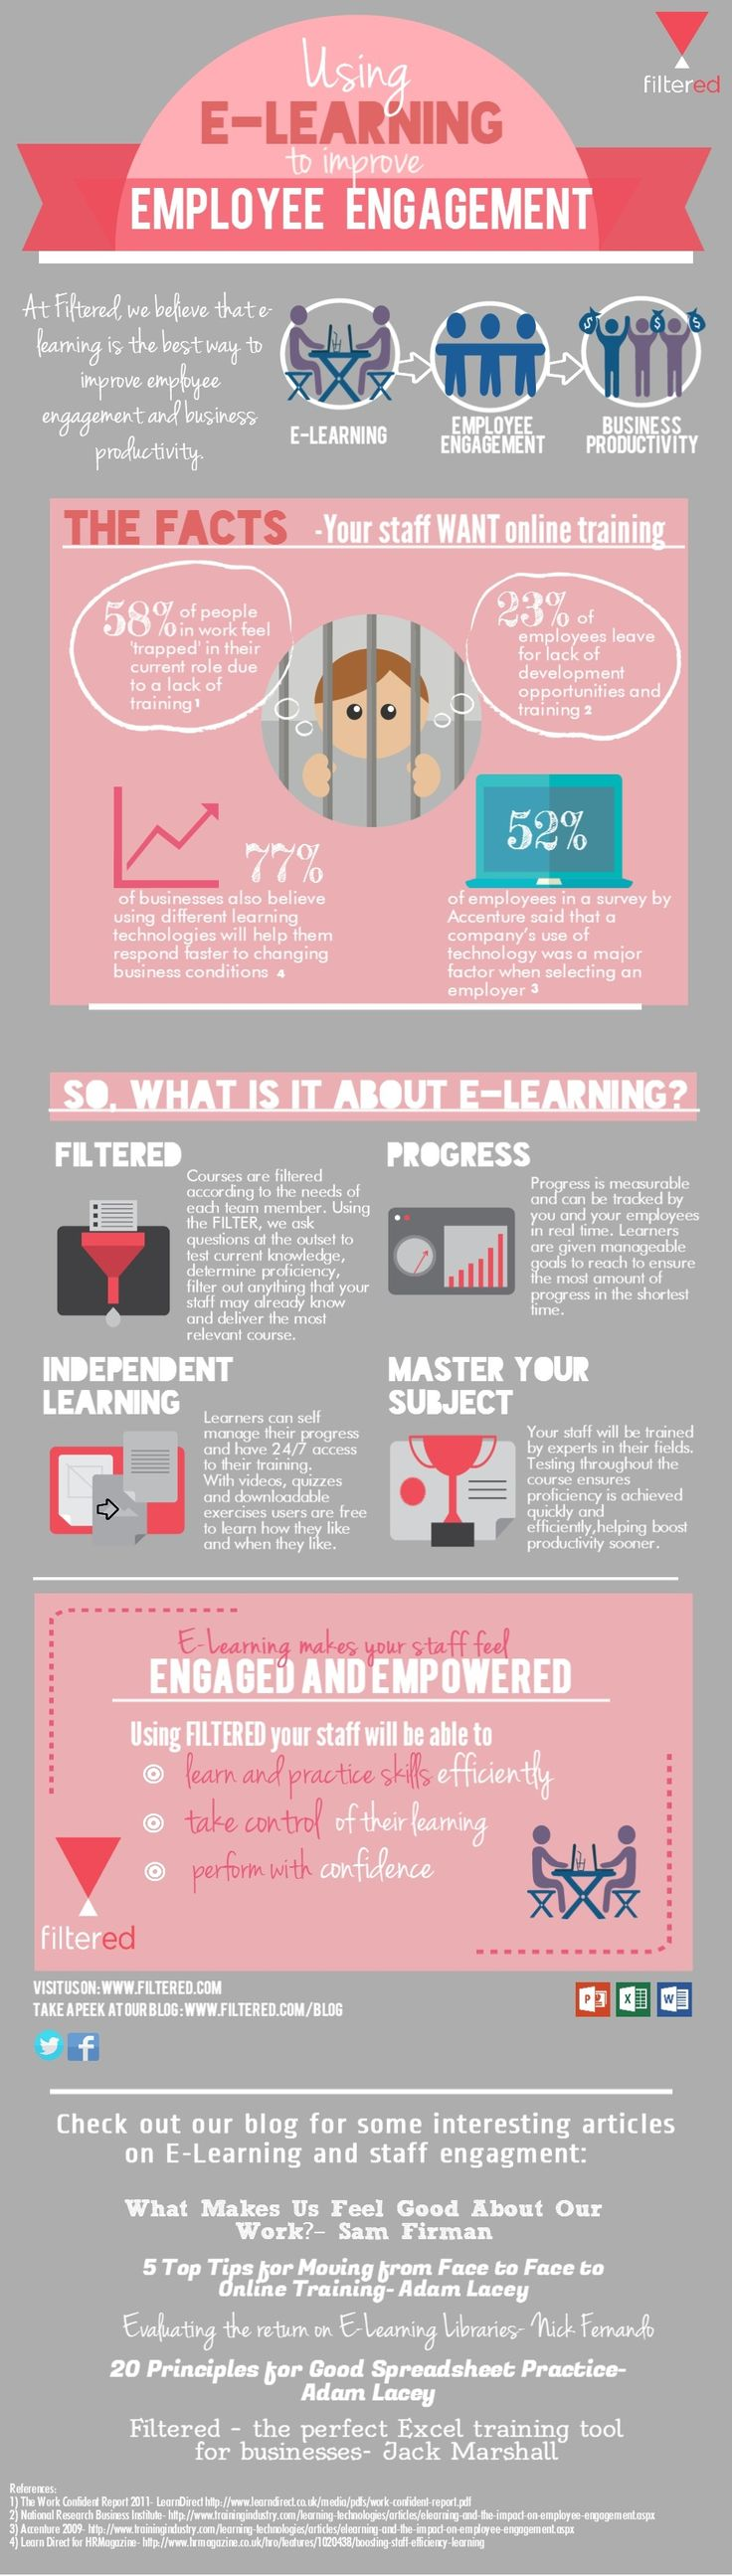 How To Use e-Learning To Improve Employee Engagement Infographic - http://elearninginfographics.com/use-e-learning-improve-employee-engagement-infographic/